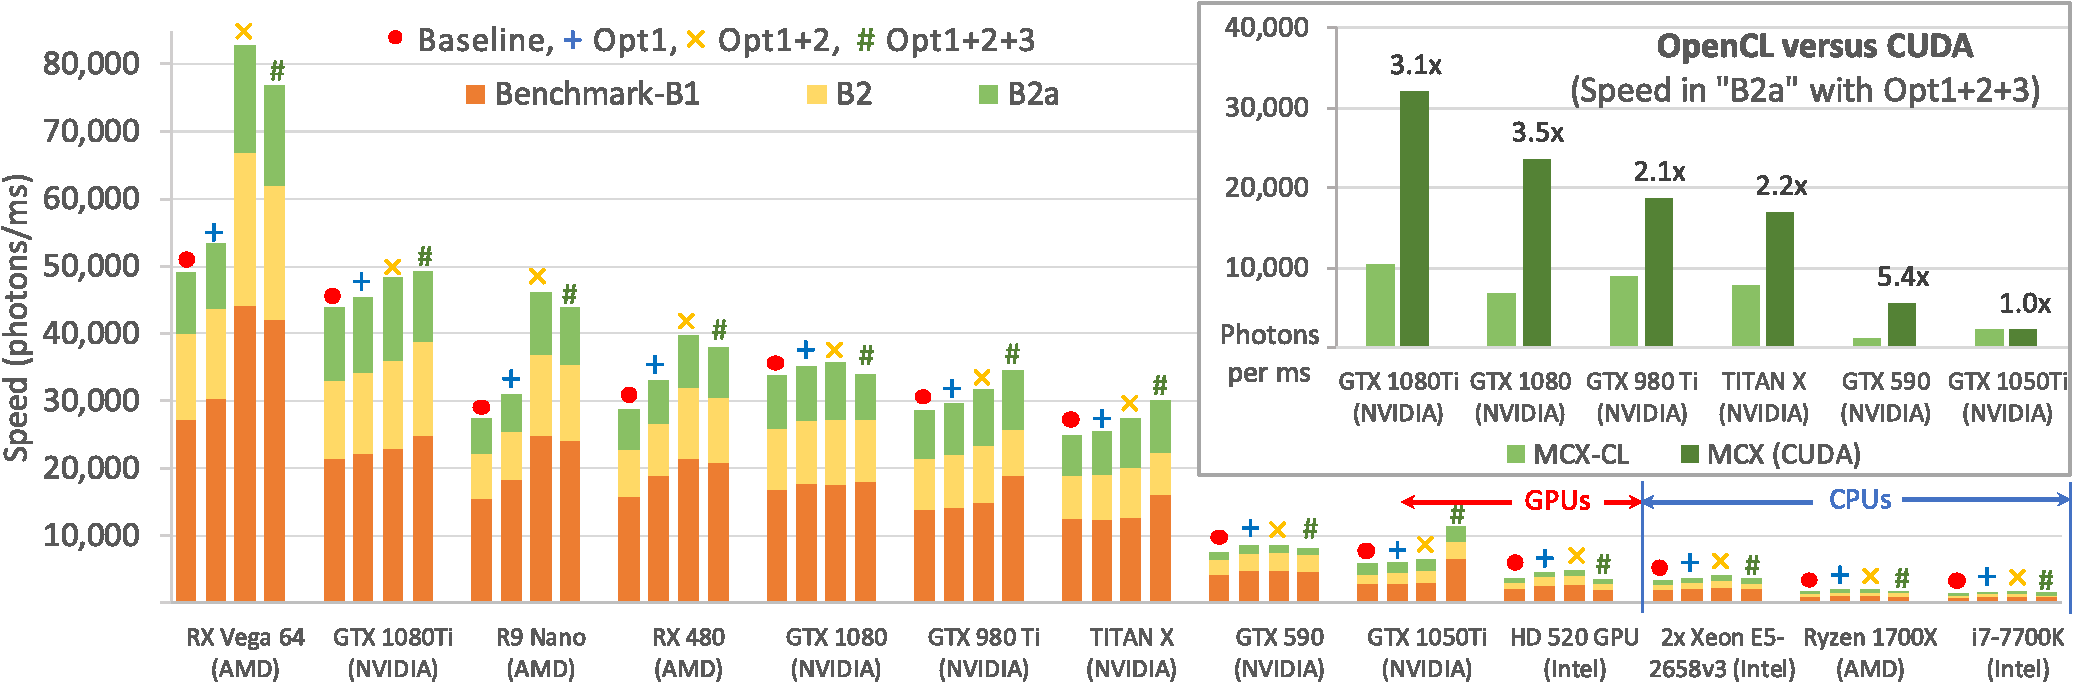 Significant speed gap between CUDA and OpenCL - how to debug